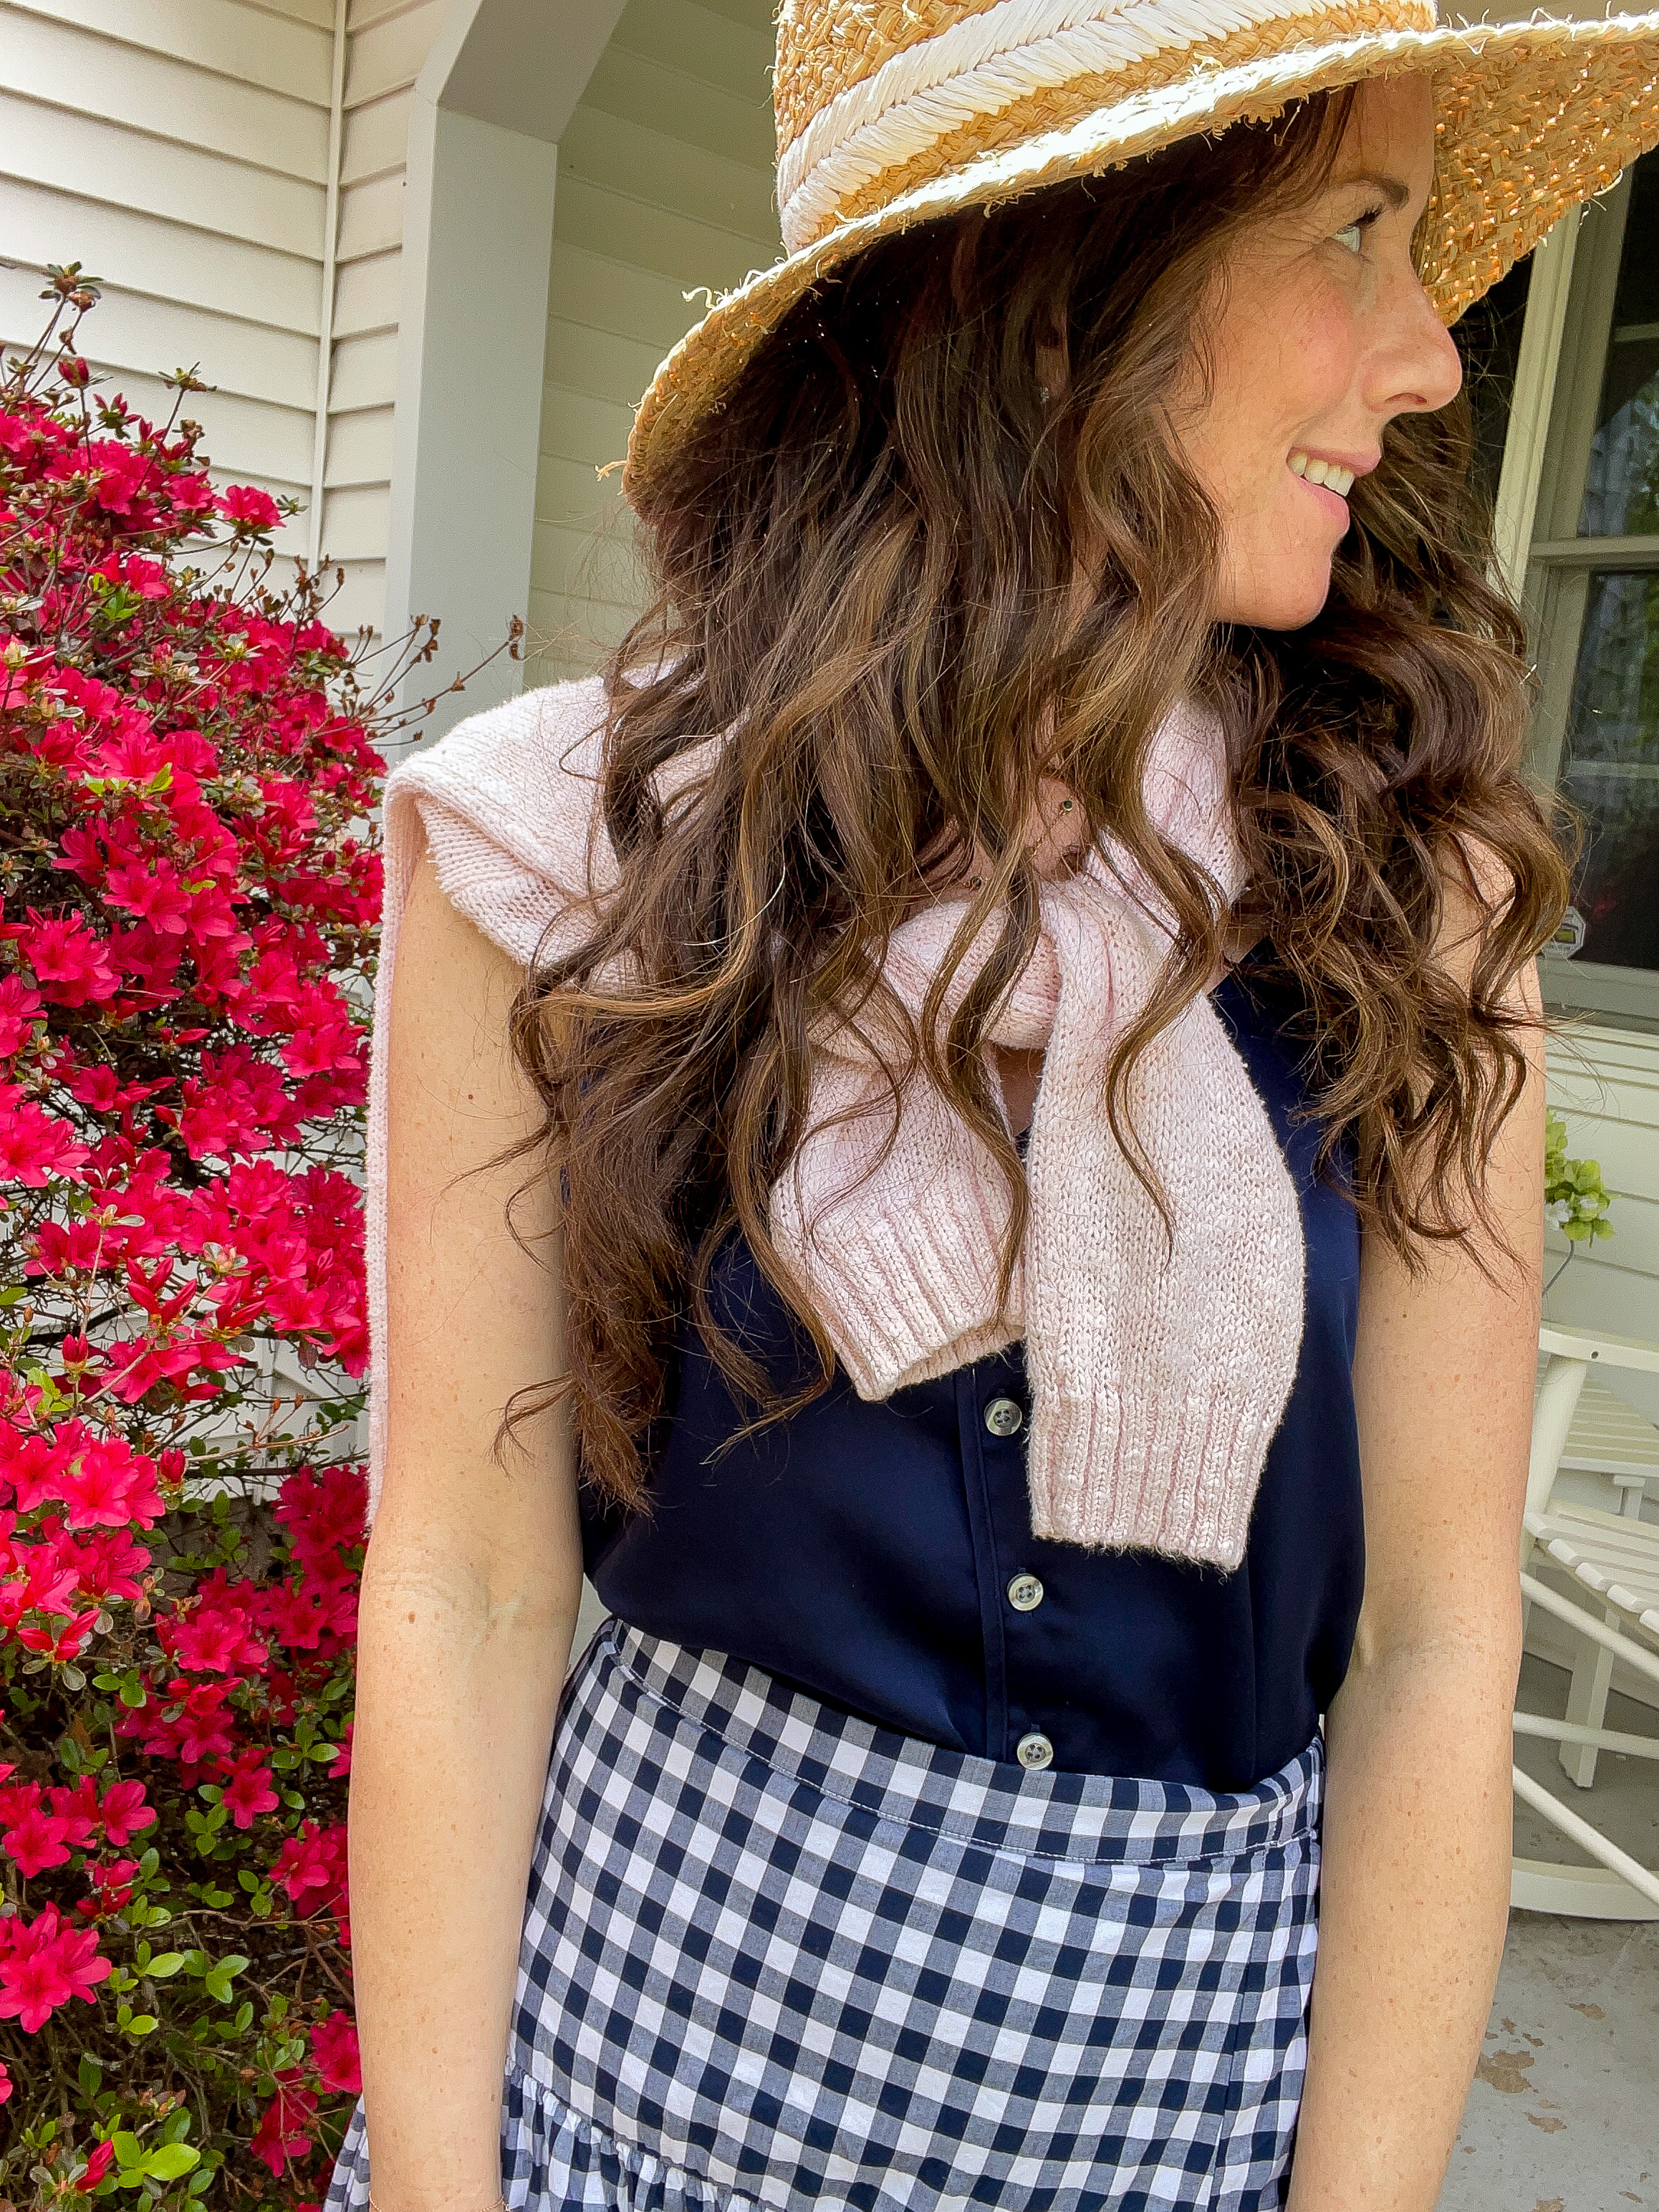 Three ways to Style a Gingham Skirt